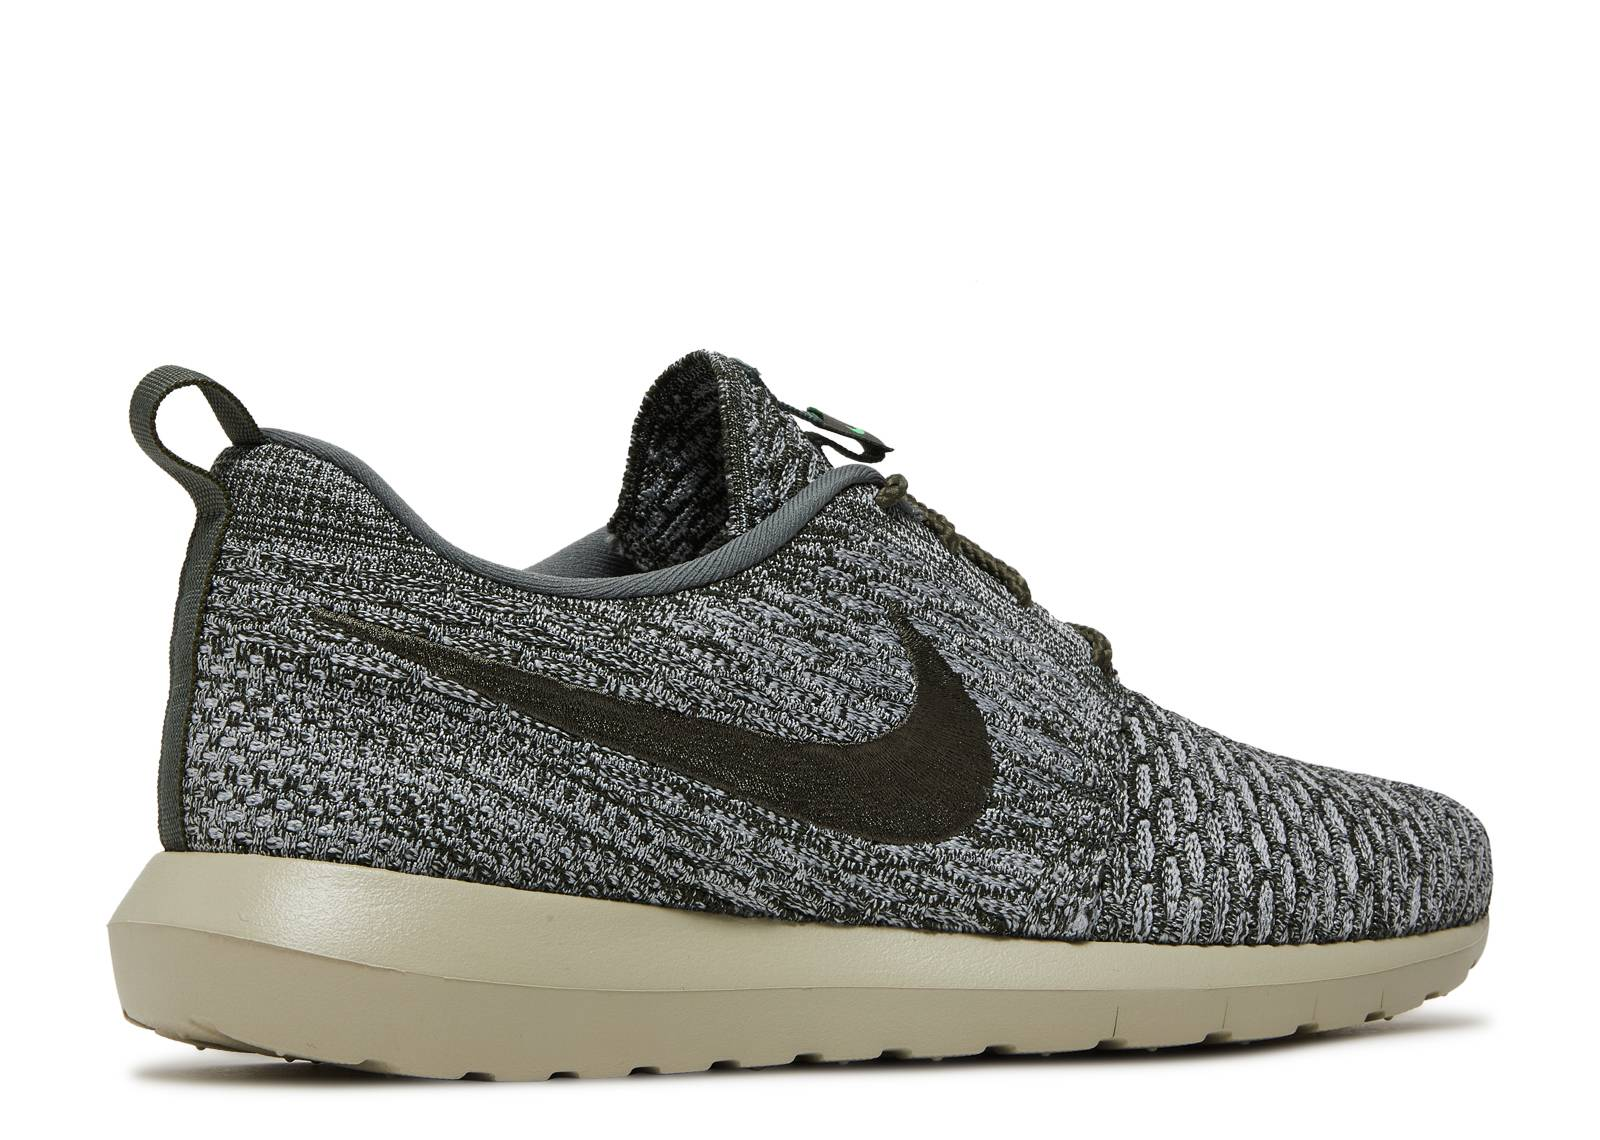 separation shoes f0a47 28bab Nike - men s - roshe flyknit wolf grey river rock light stone sequoia  29292072 - flyknit rosherun · flyknit rosherun · flyknit rosherun .